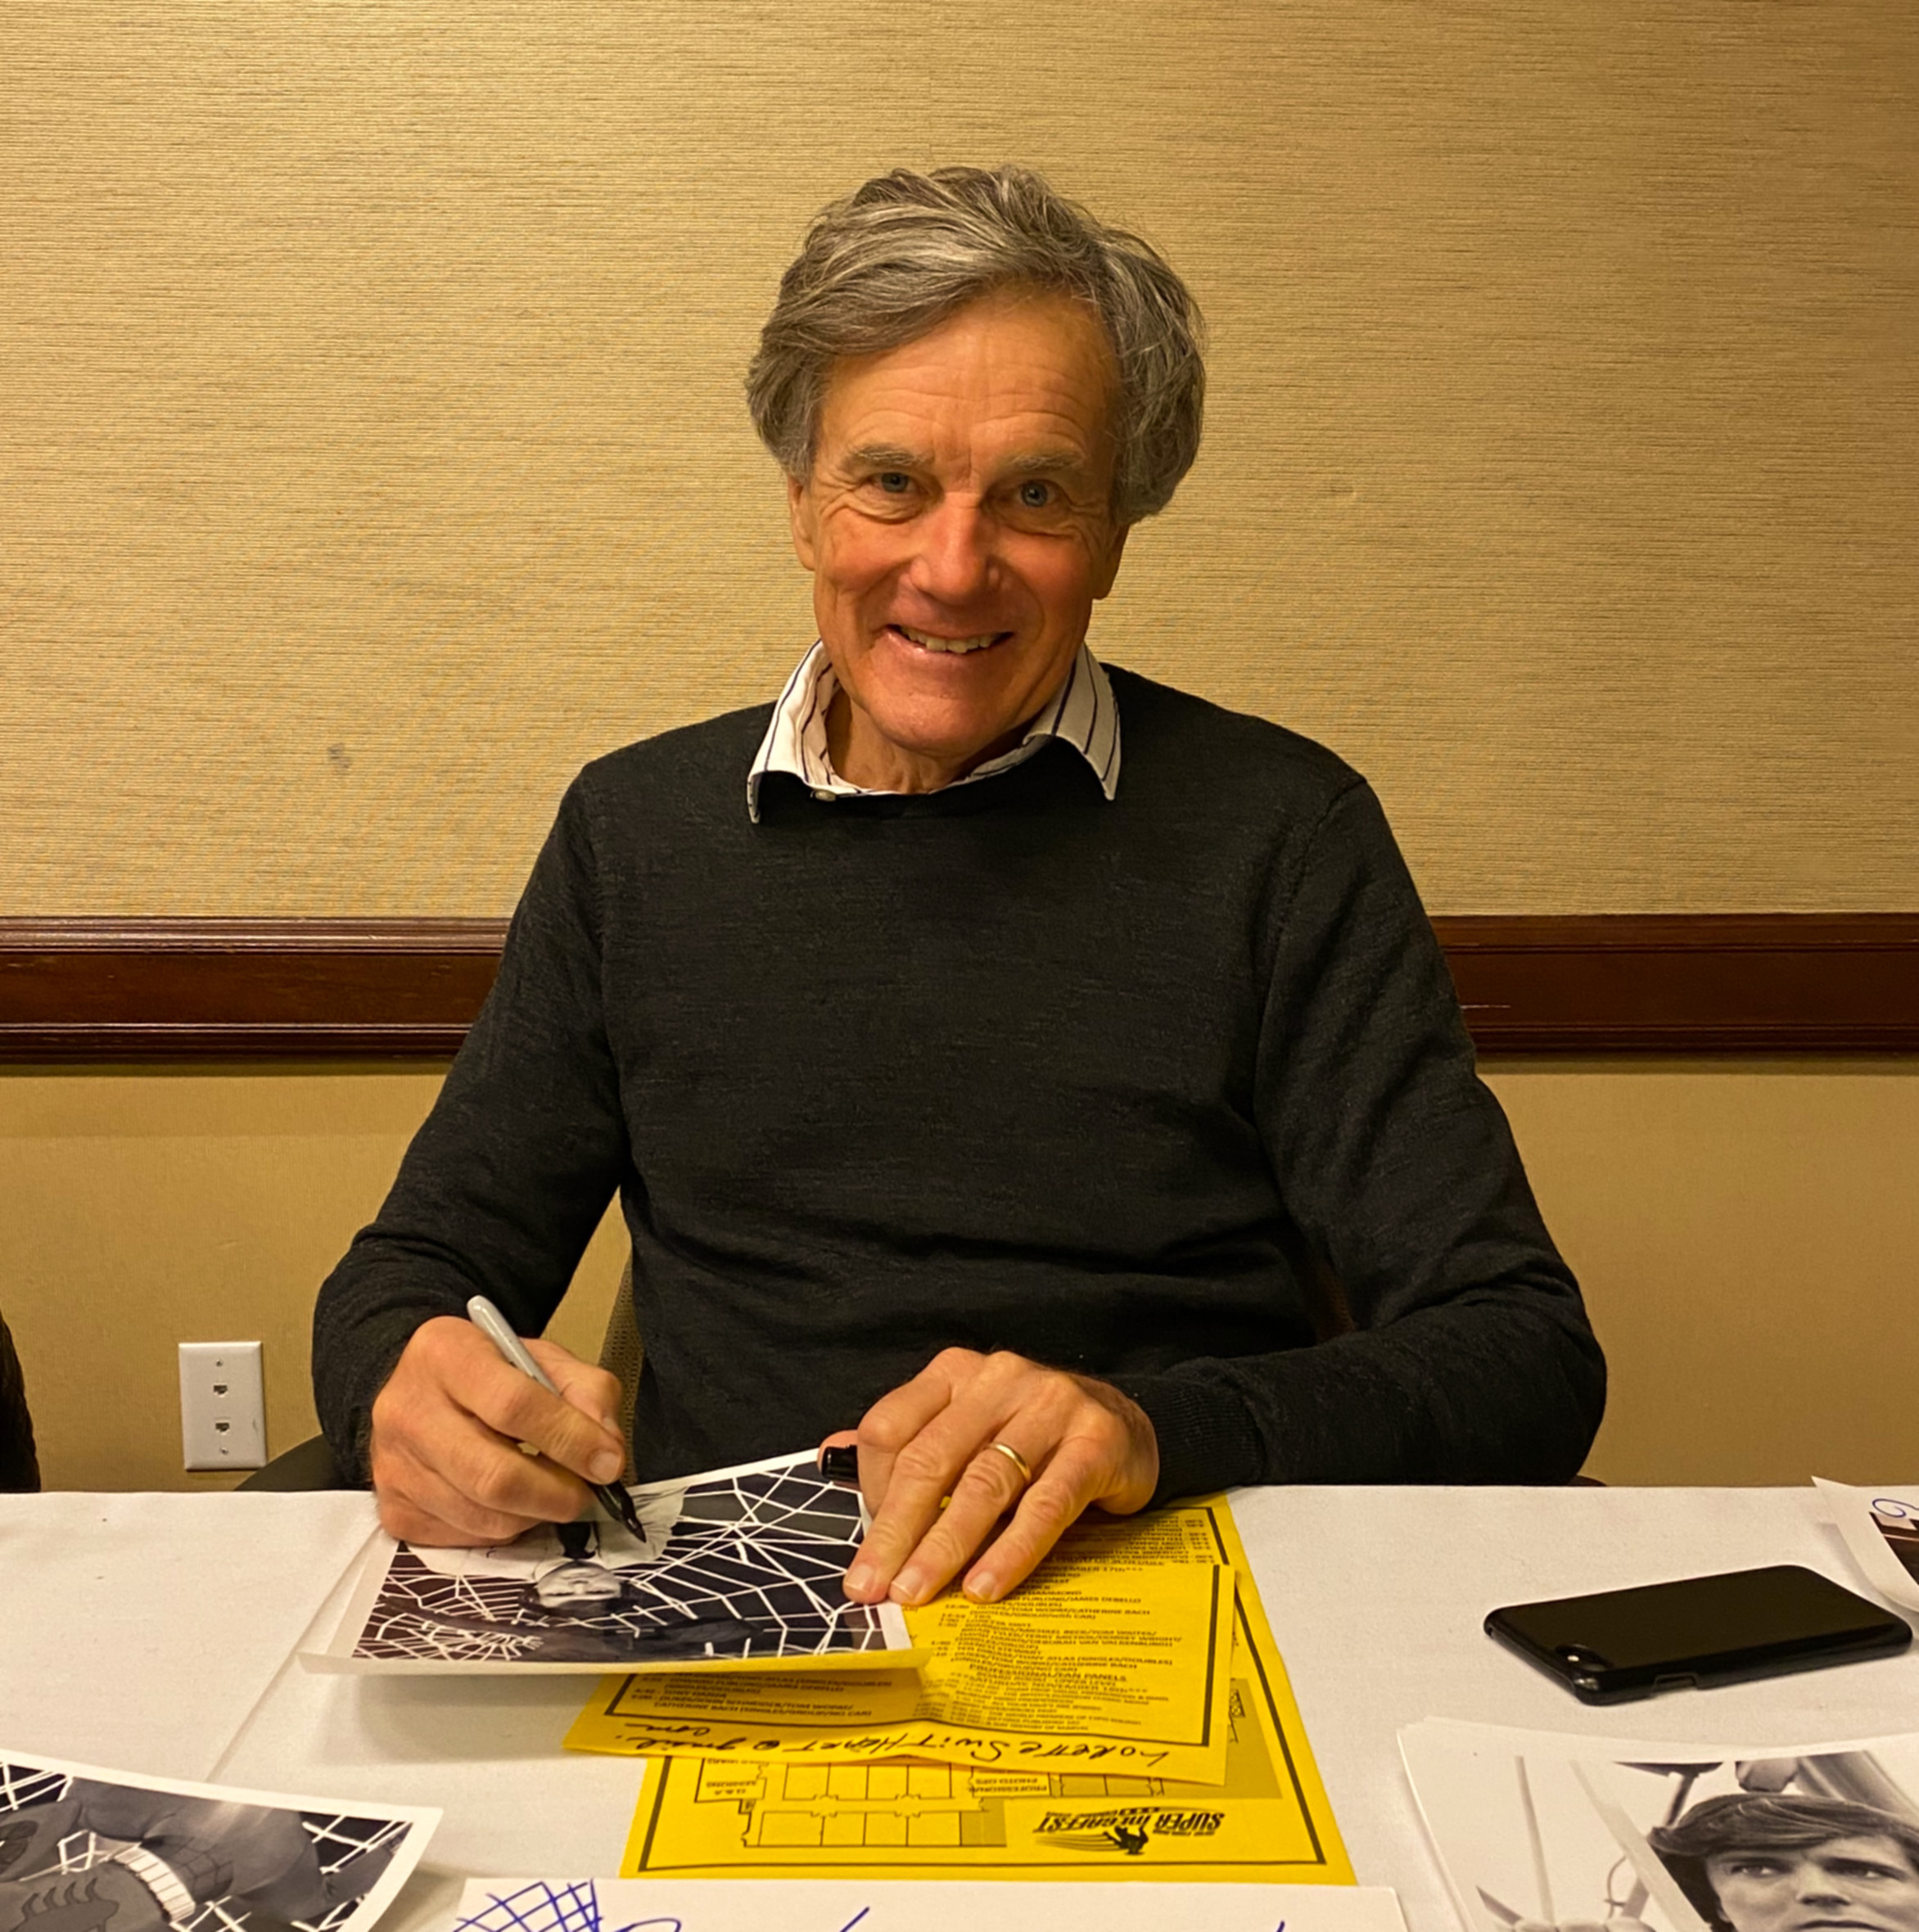 Nicholas Hammond (The Sound of Music, Once Upon A Time in Hollywood).